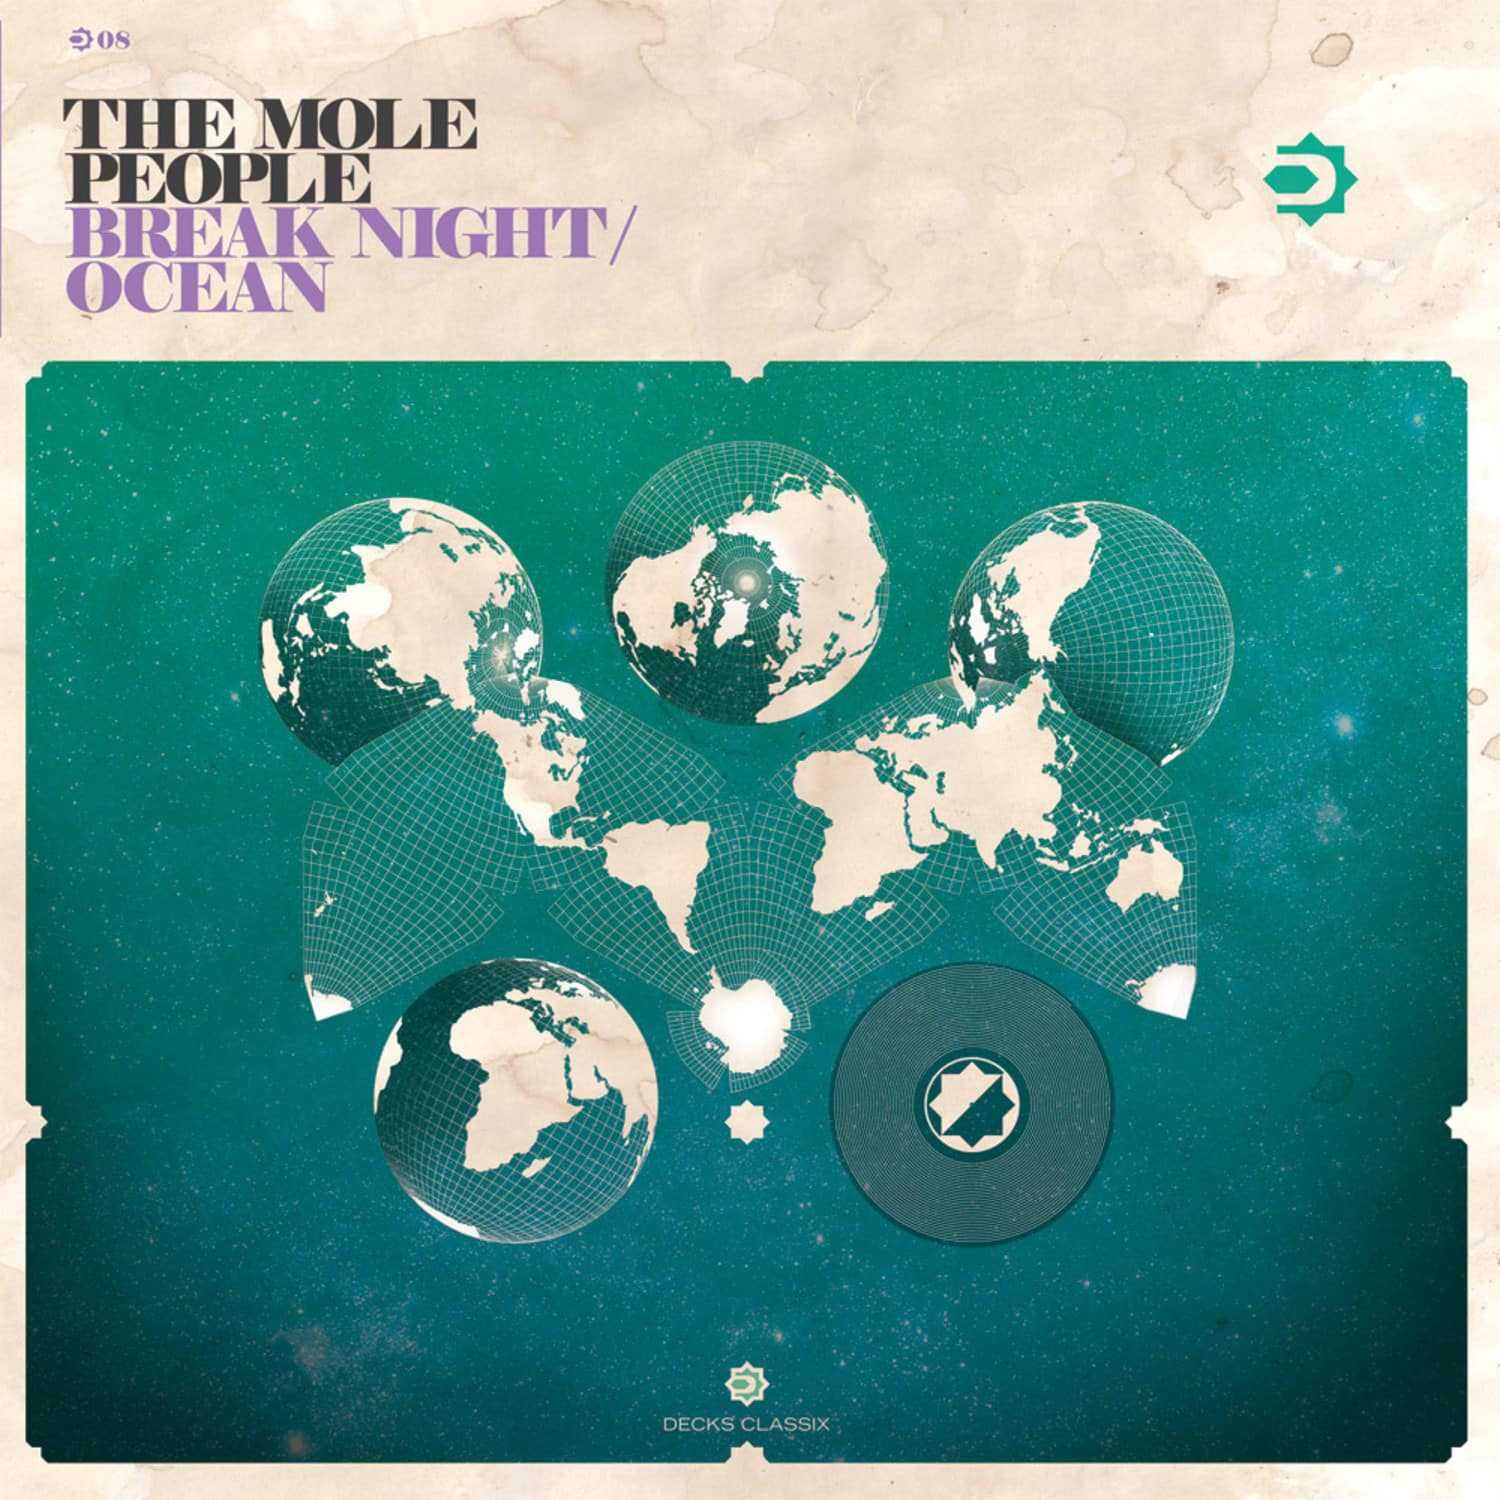 The Mole People - BREAK NIGHT / OCEAN